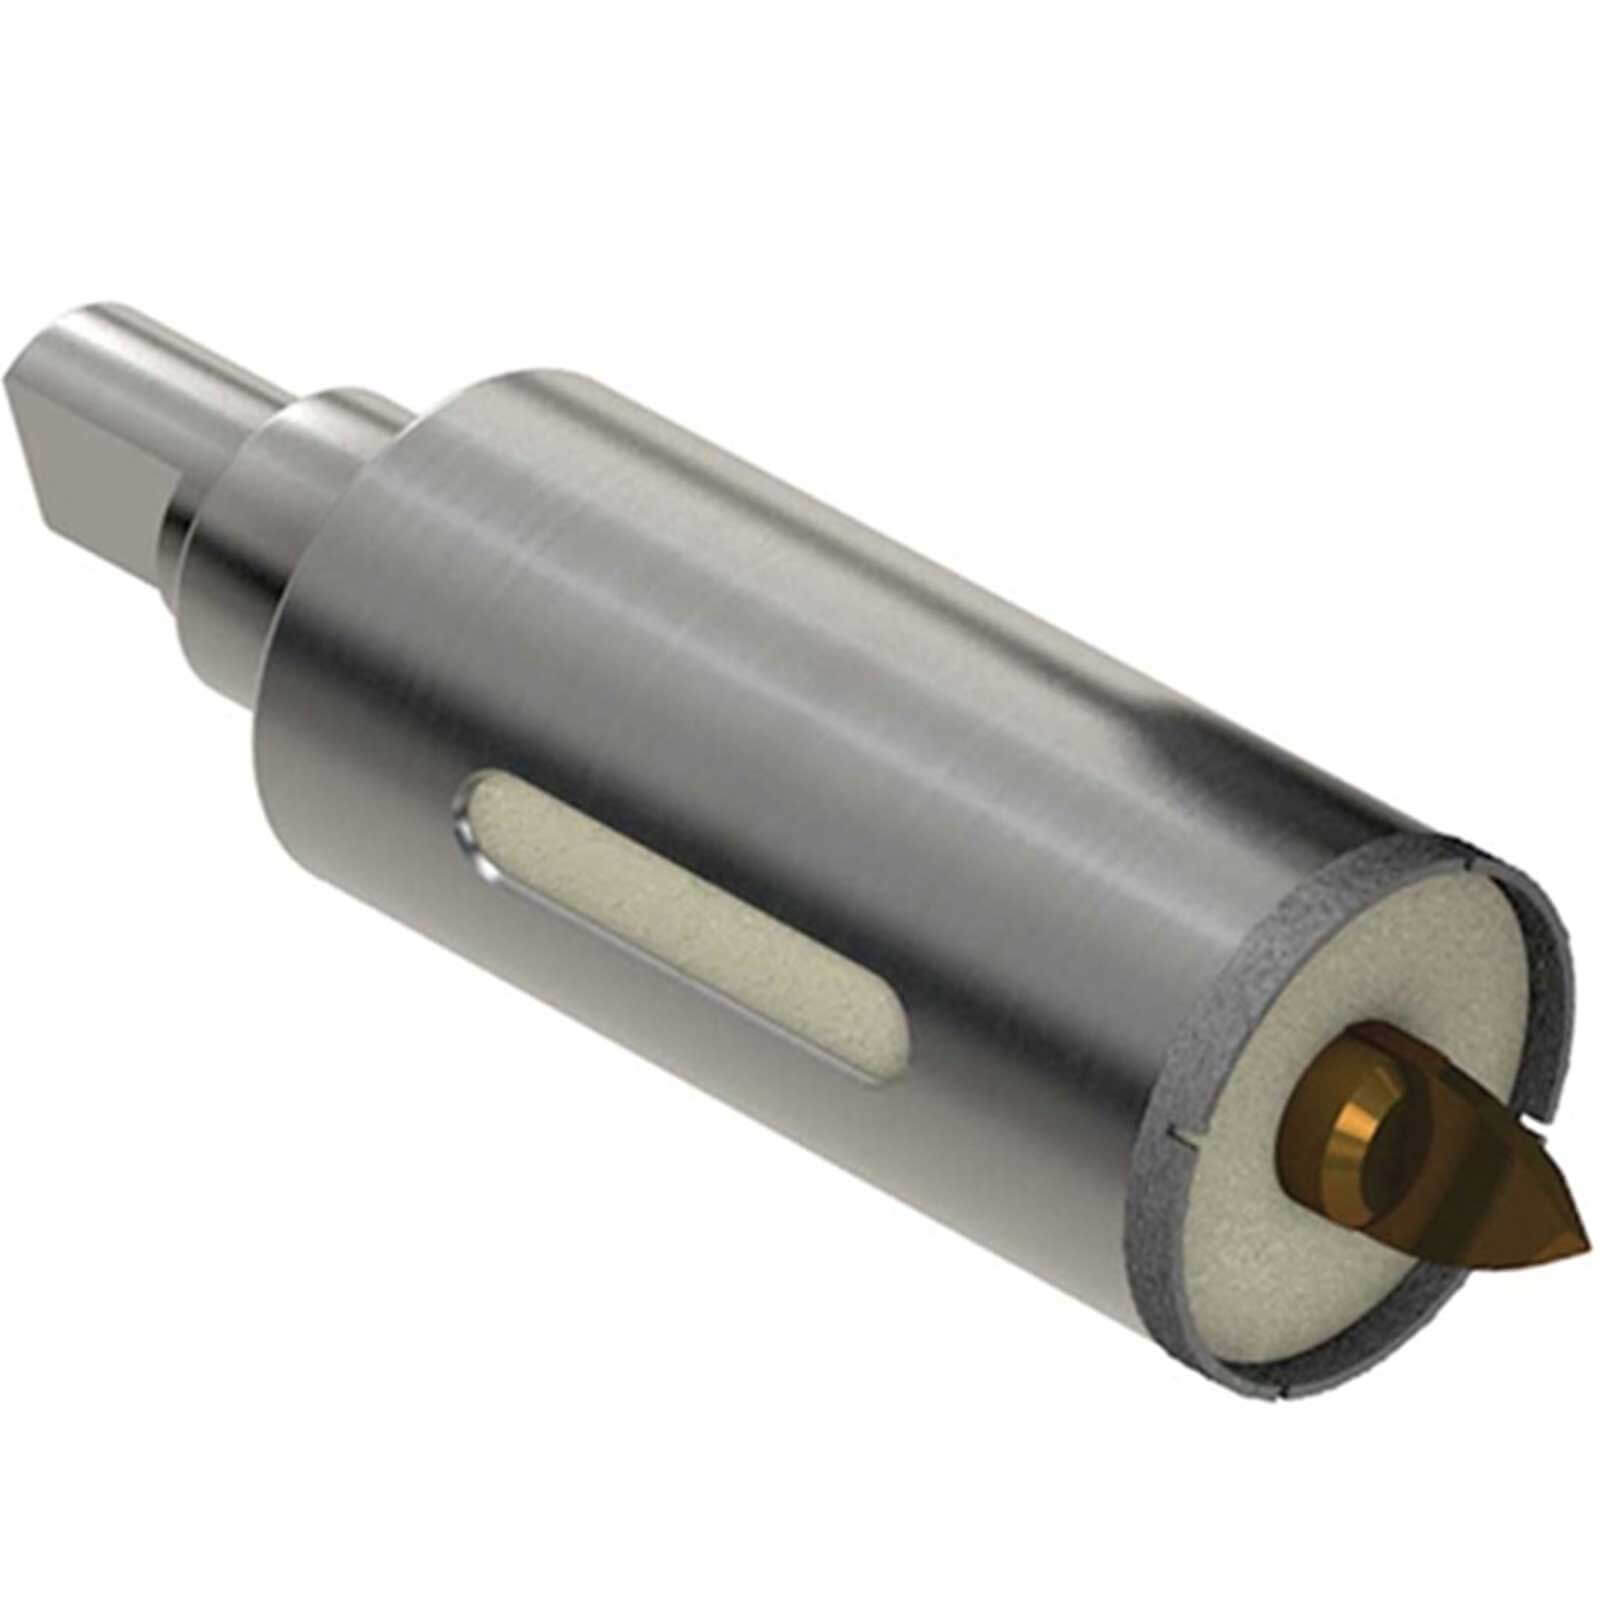 Image of Marcrist PG350 Tile and Porcelain Drill 20mm